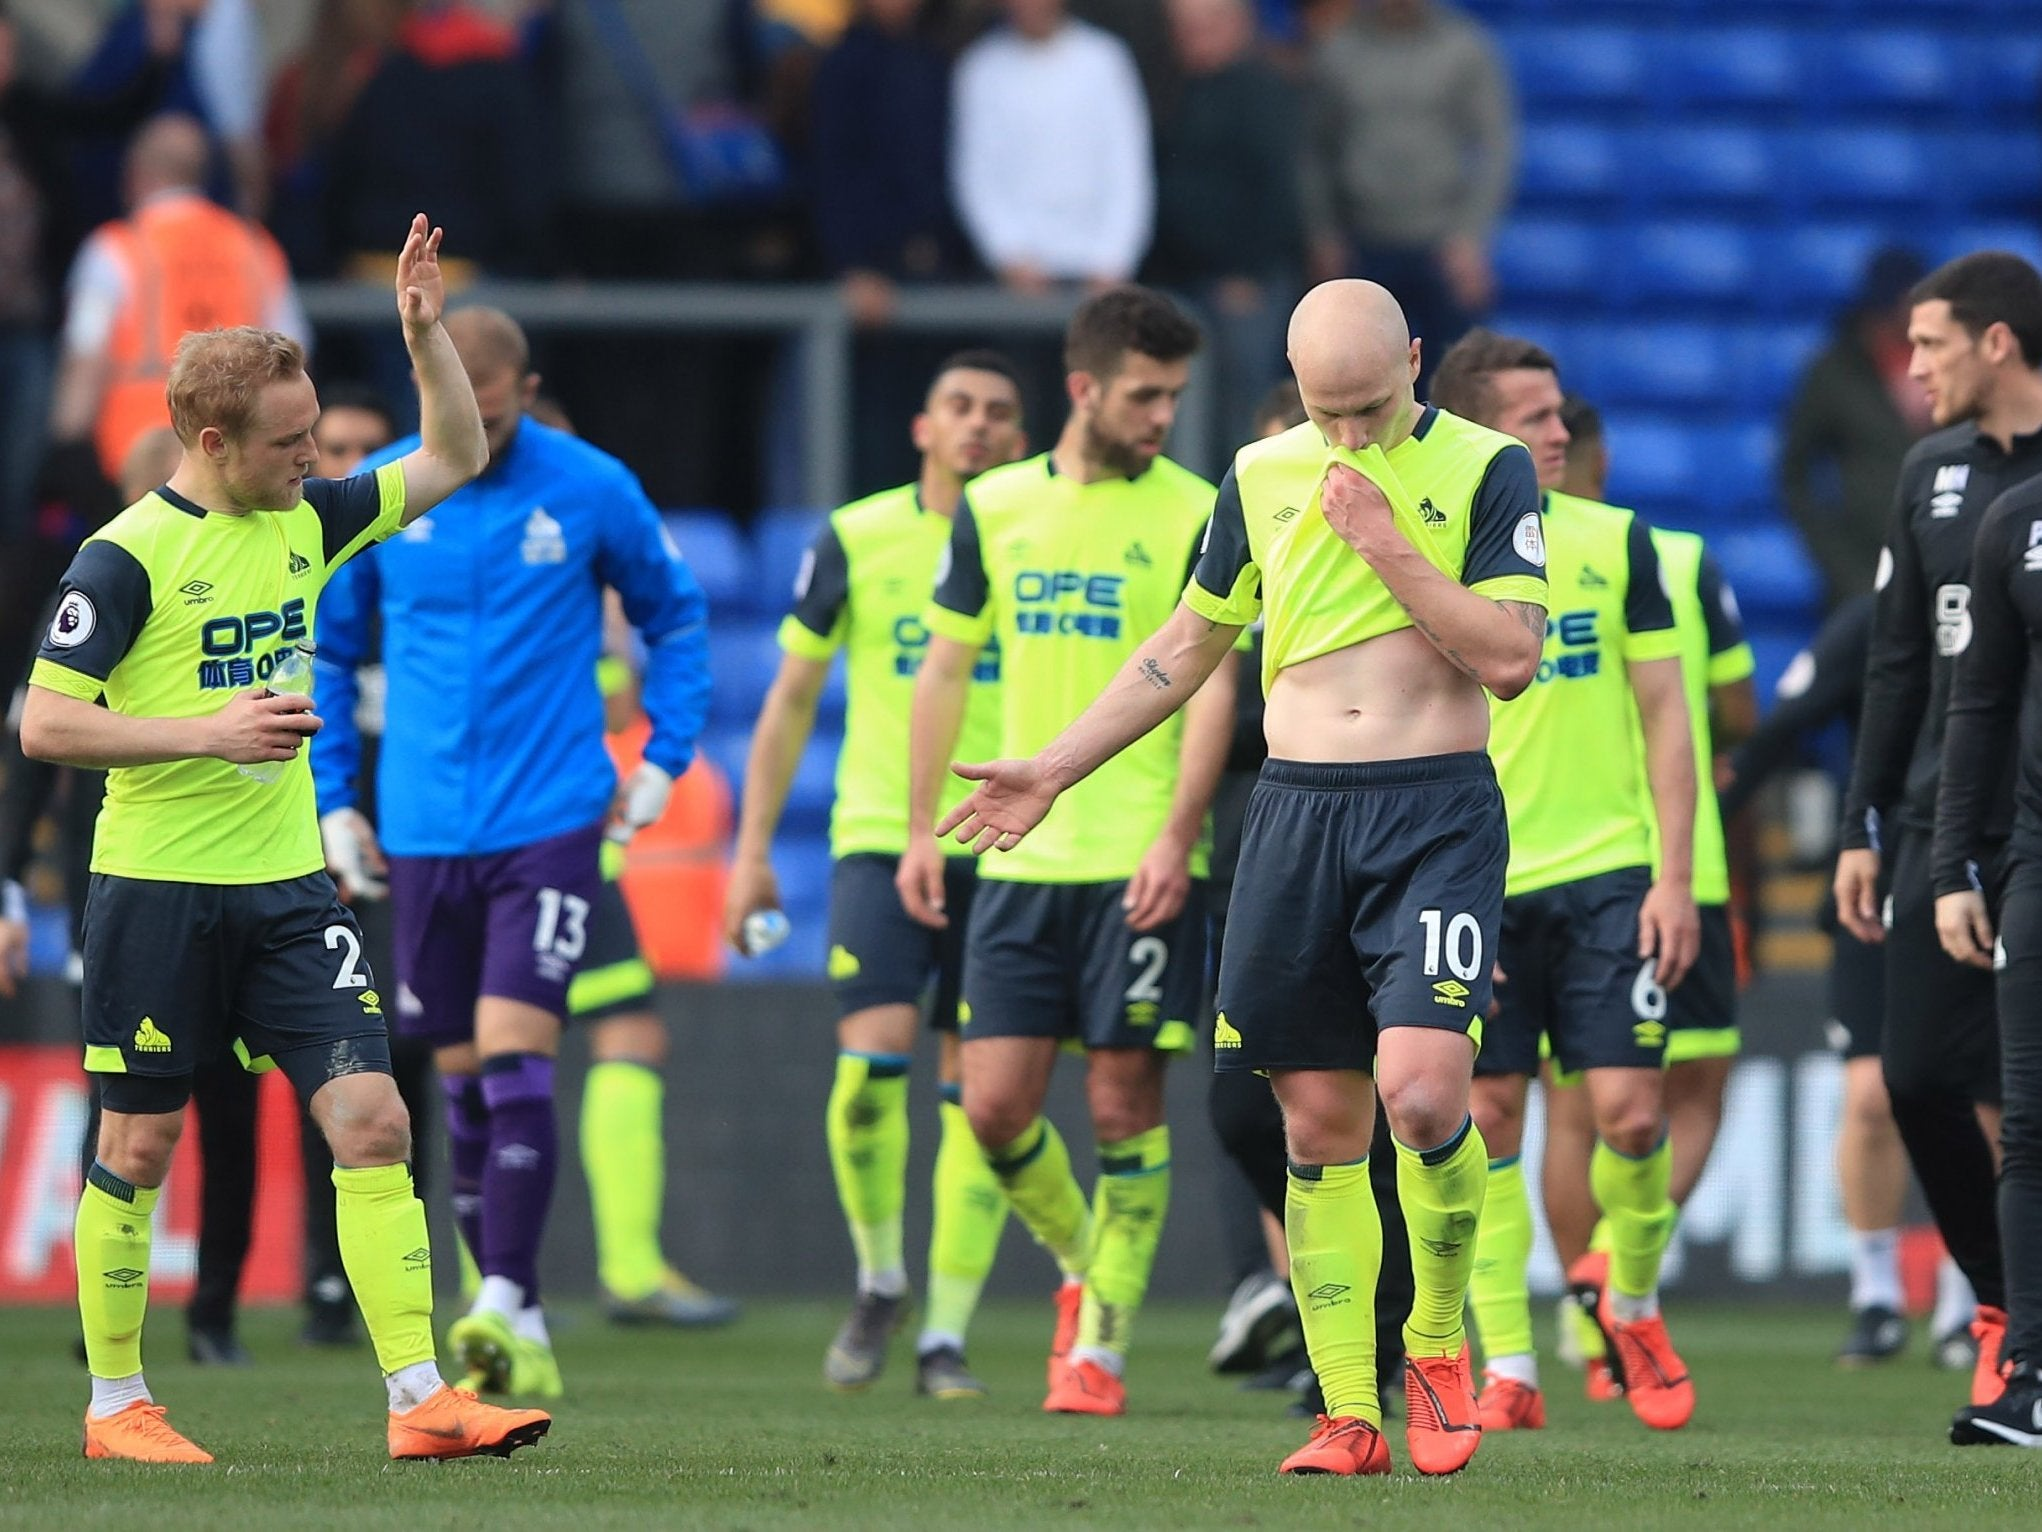 011122be050 Huddersfield relegated: Terriers defeated by Crystal Palace to equal  earliest Premier League relegation | The Independent